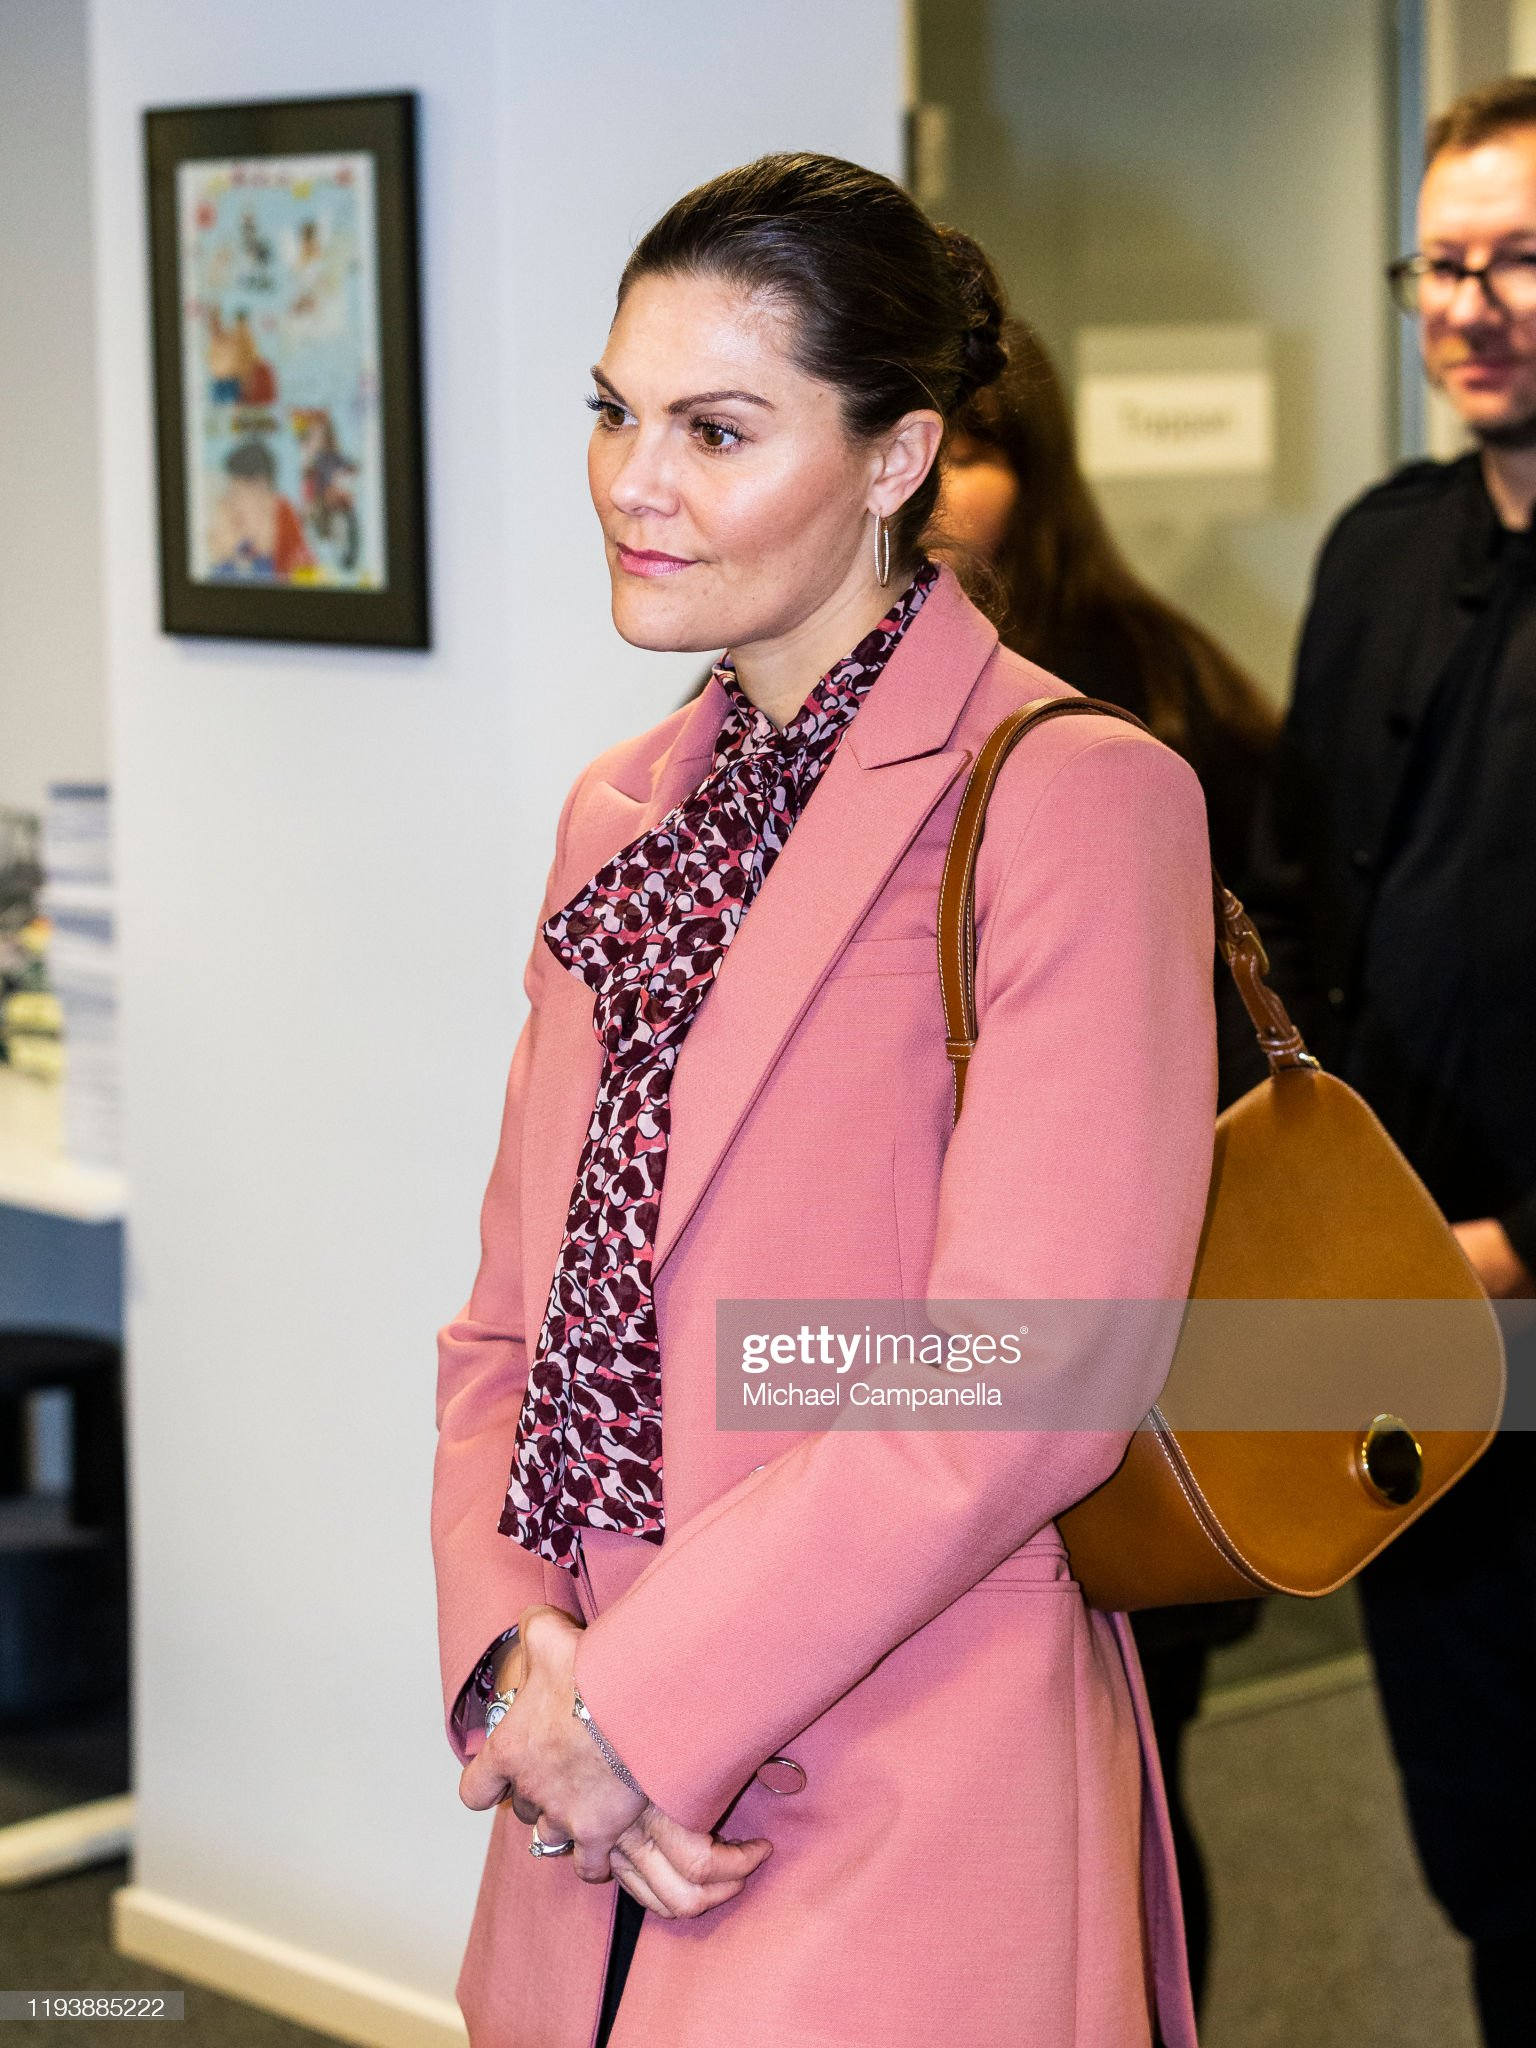 crown-princess-victoria-of-sweden-visits-the-swedish-federation-for-picture-id1193885222